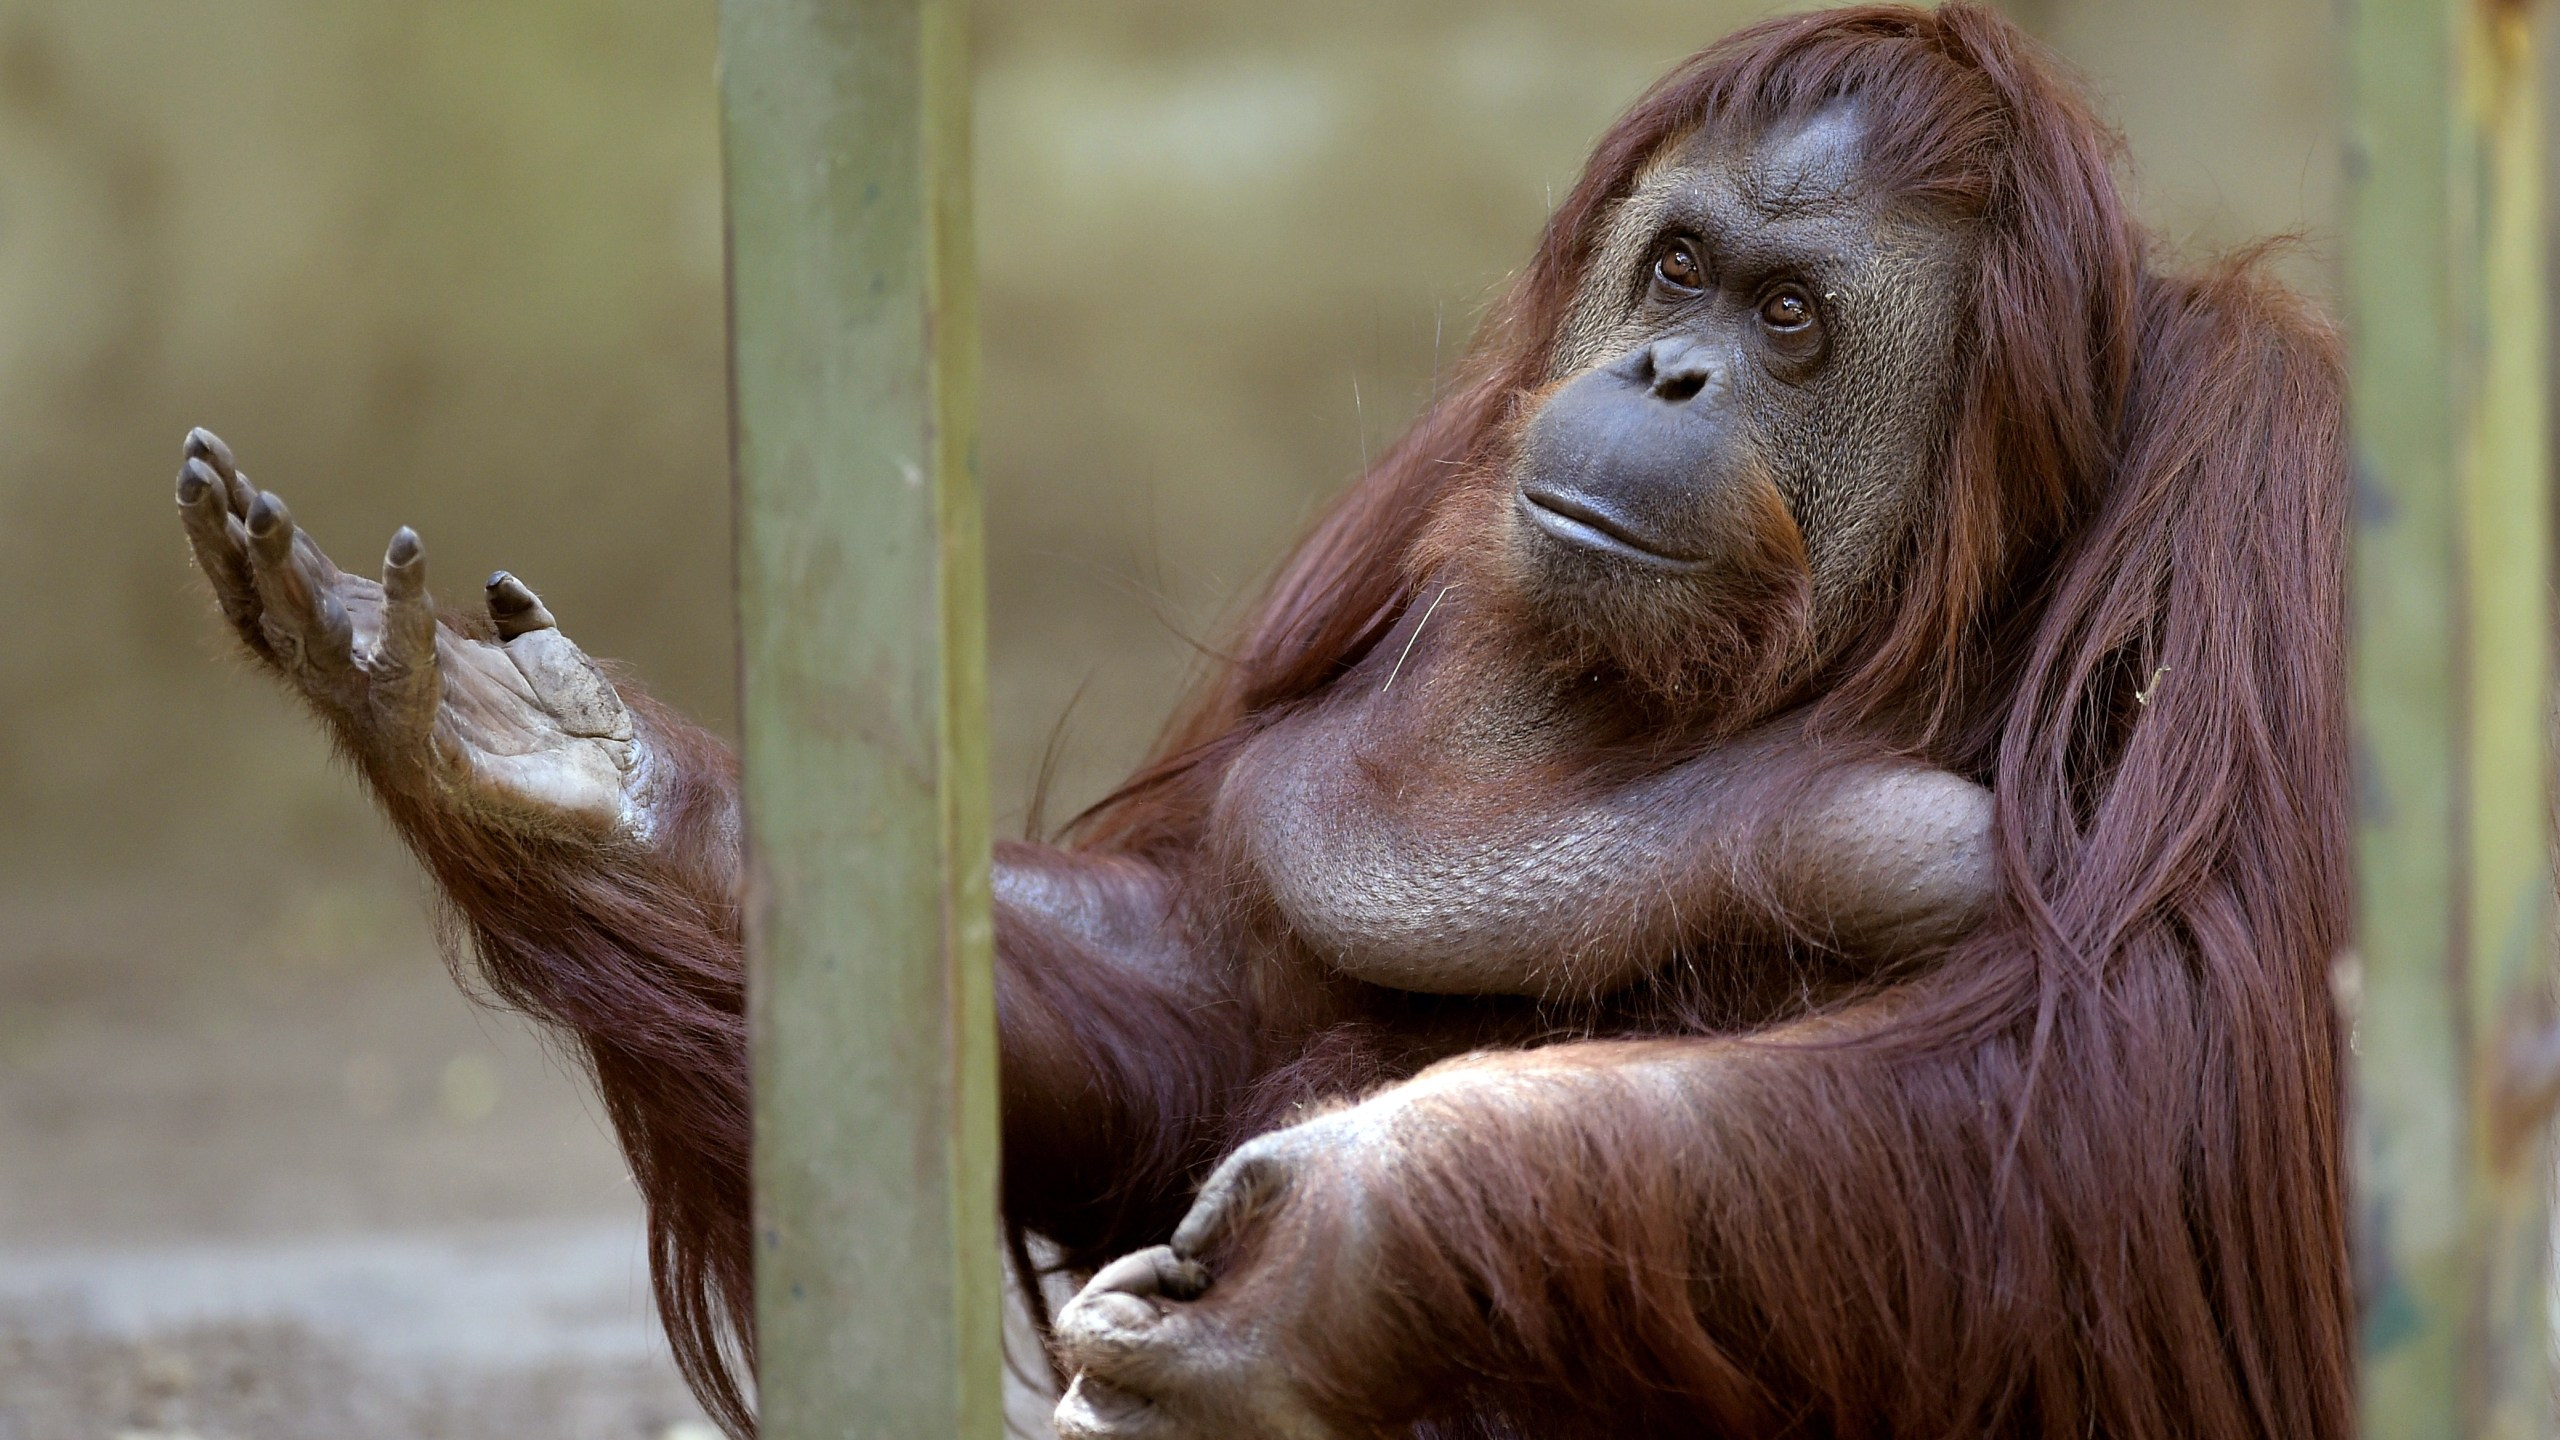 Sandra the orangutan is pictured at Buenos Aires' zoo, on Dec. 22, 2014. (Credit: Juan Mabromata/AFP via Getty Images)